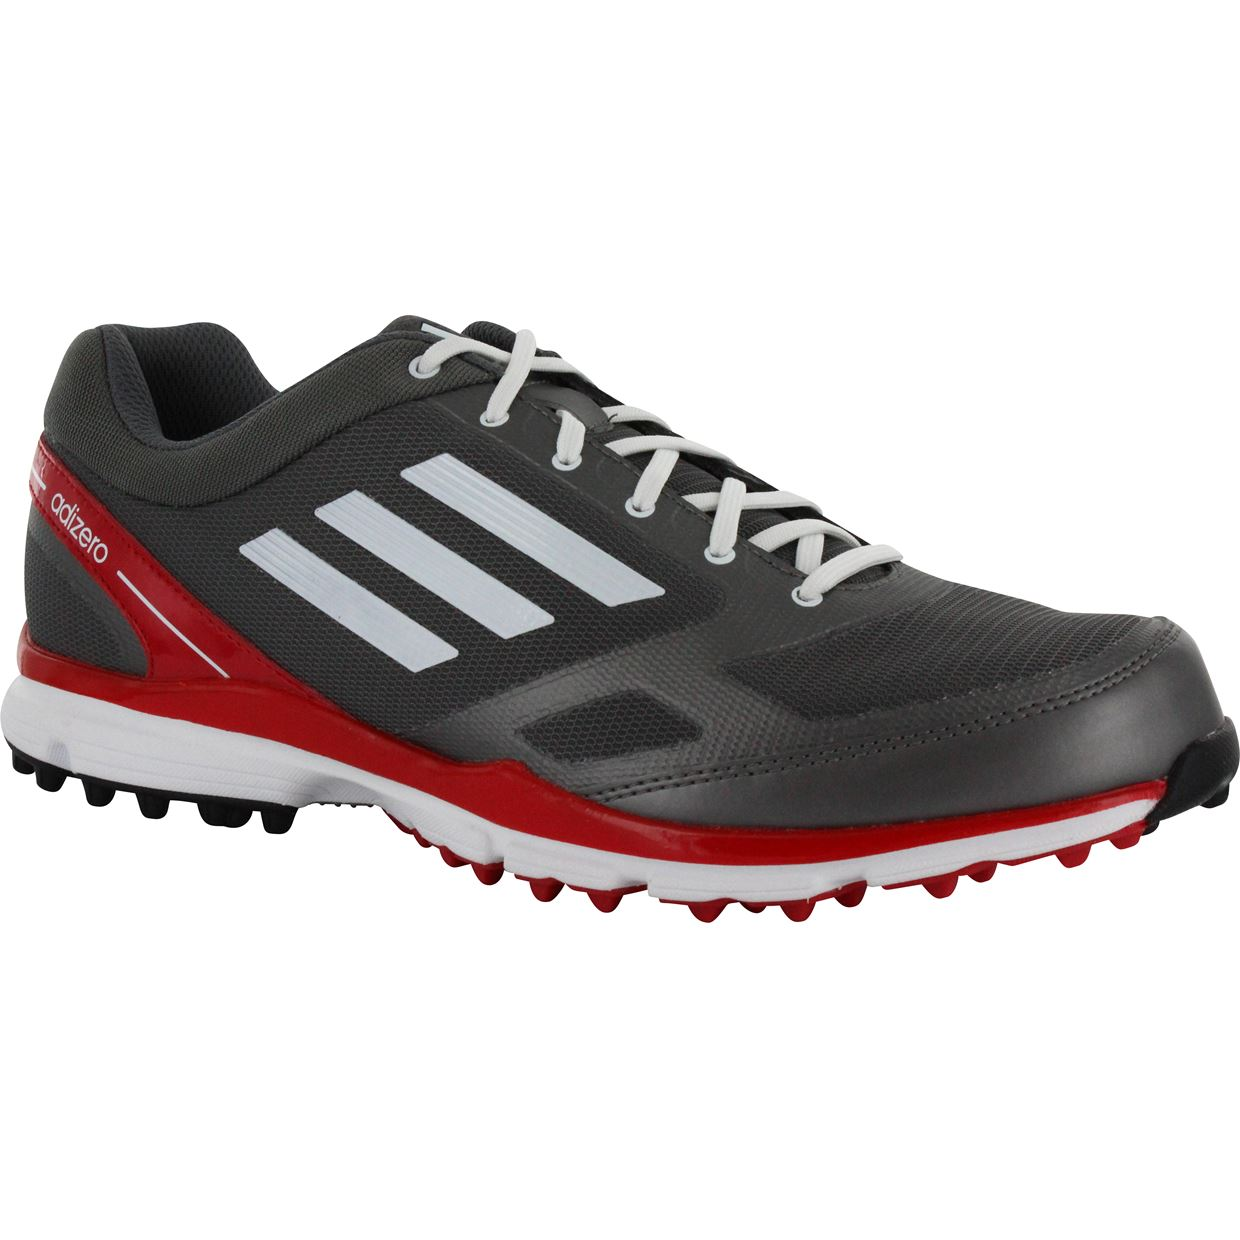 adidas adizero sport ii spikeless shoes at globalgolf